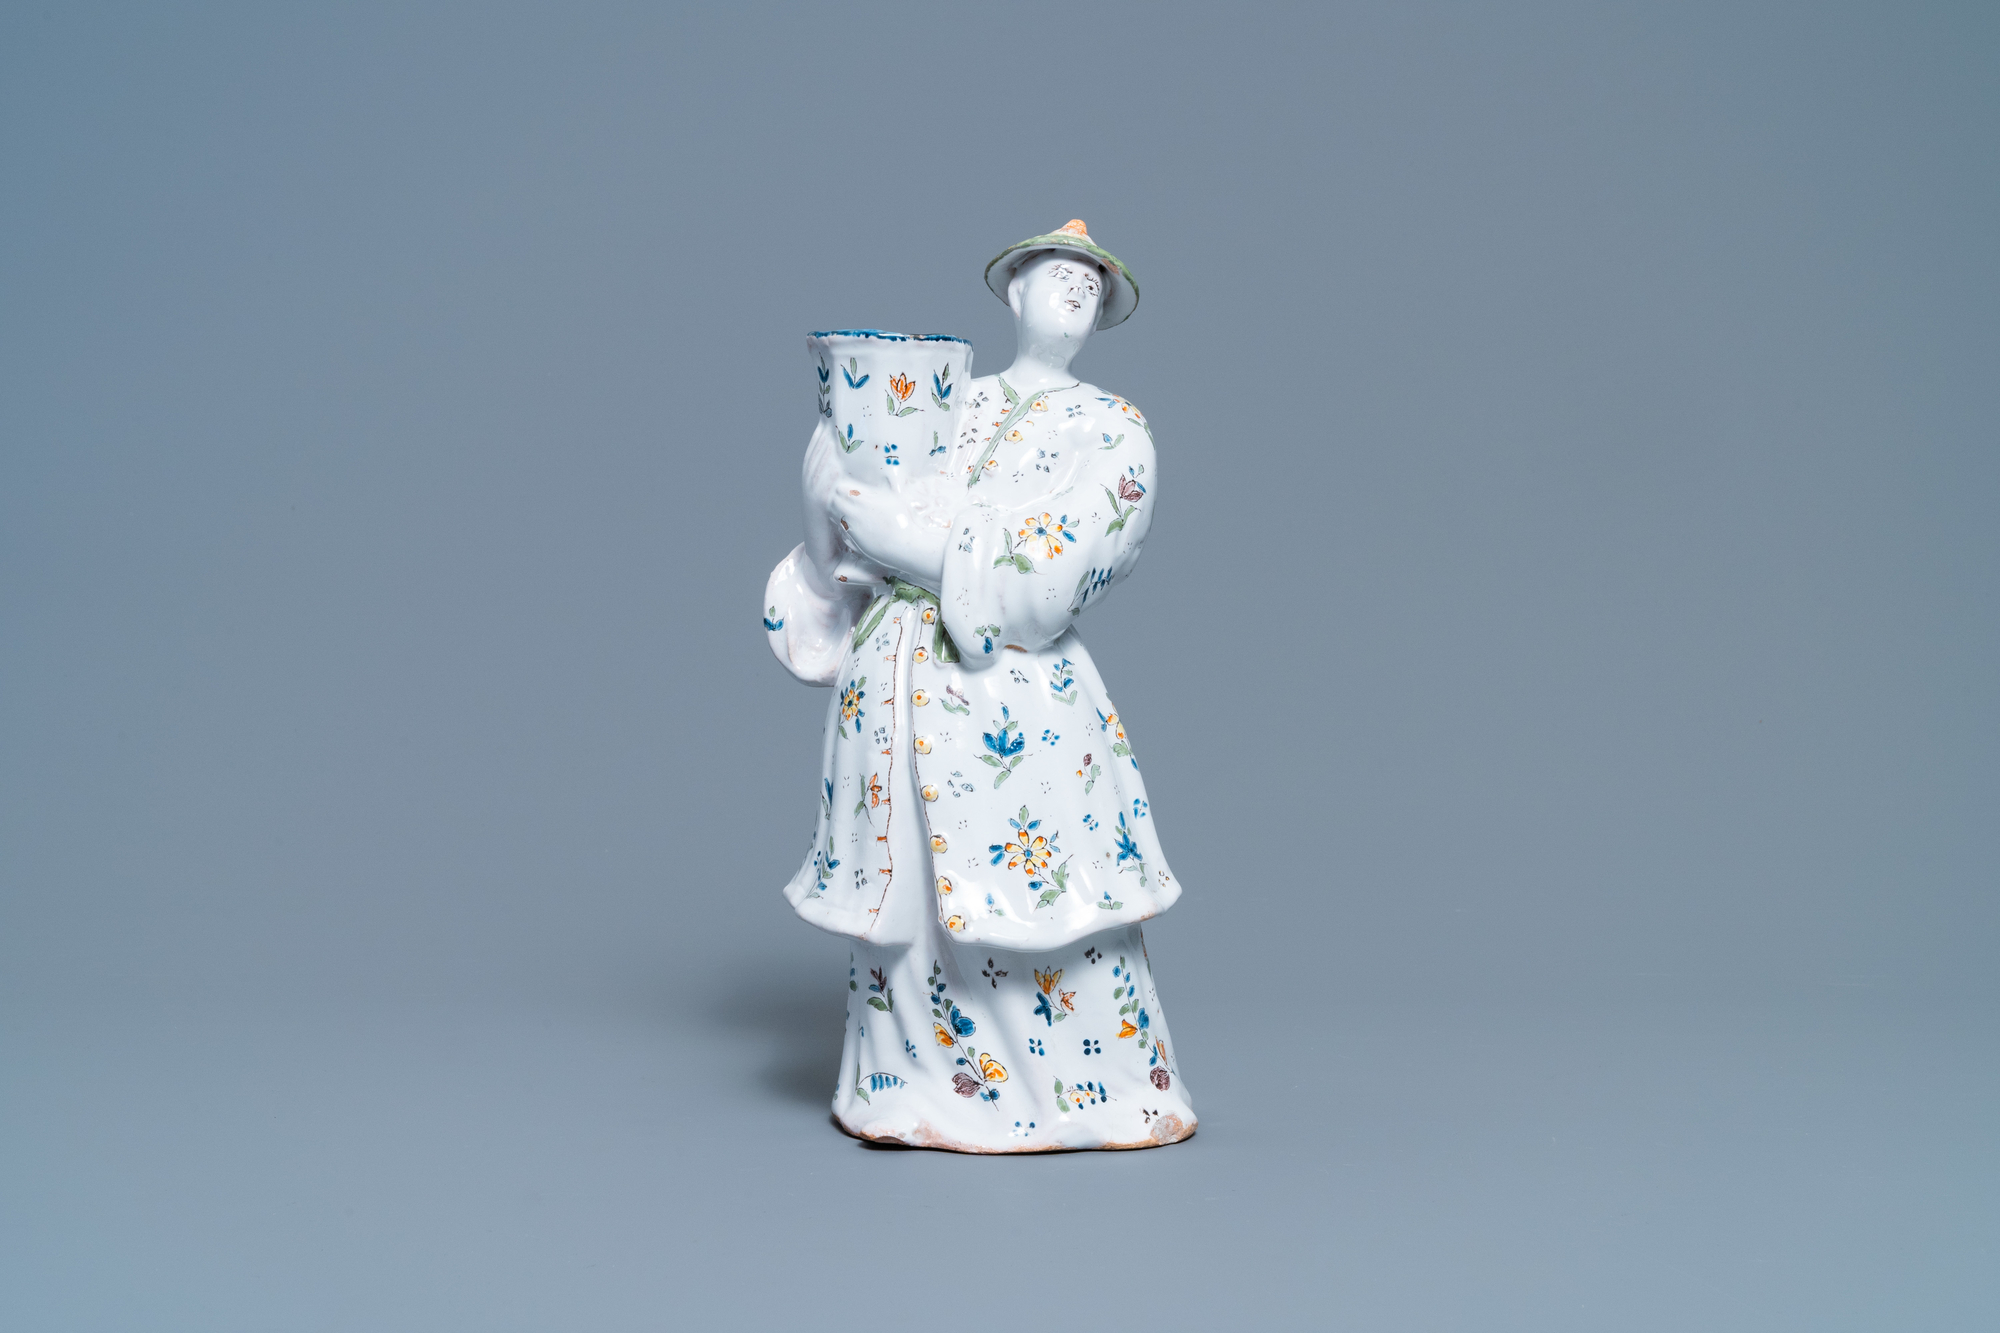 A polychrome French faience candle holder in the shape of a Chinaman, Lille, 18th C. - Image 2 of 7